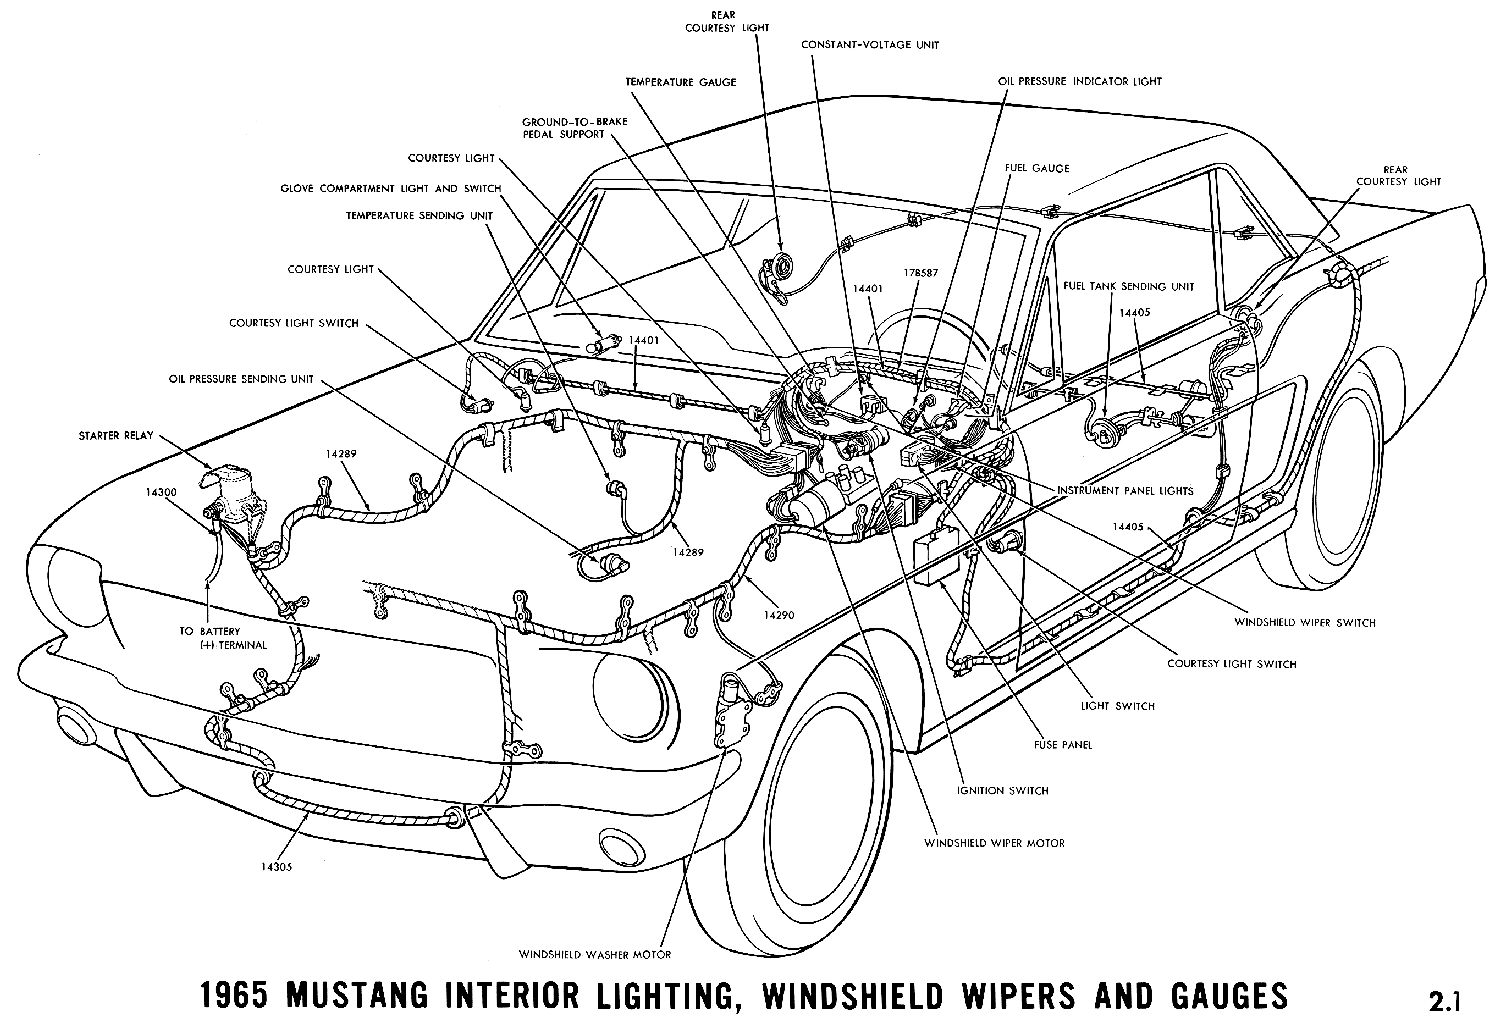 1965 Mustang Wiring Diagrams Average Joe Restoration Furthermore Wiper Motor Diagram Together With 1965f Interior Lights Windshield And Gauges Pictorial Or Schematic